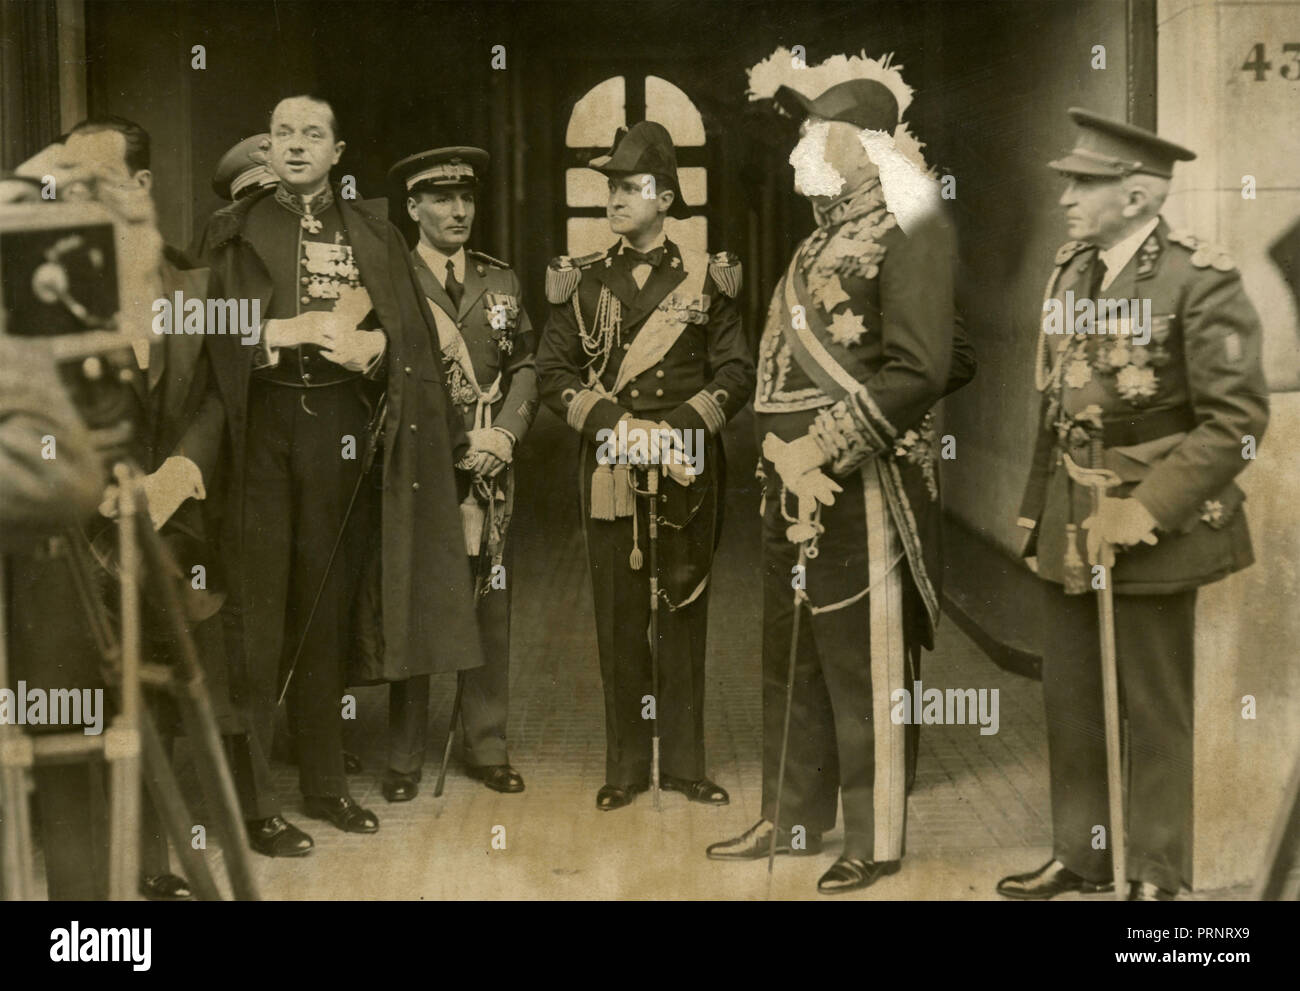 Unidentified King and high military authorities, 1930s - Stock Image